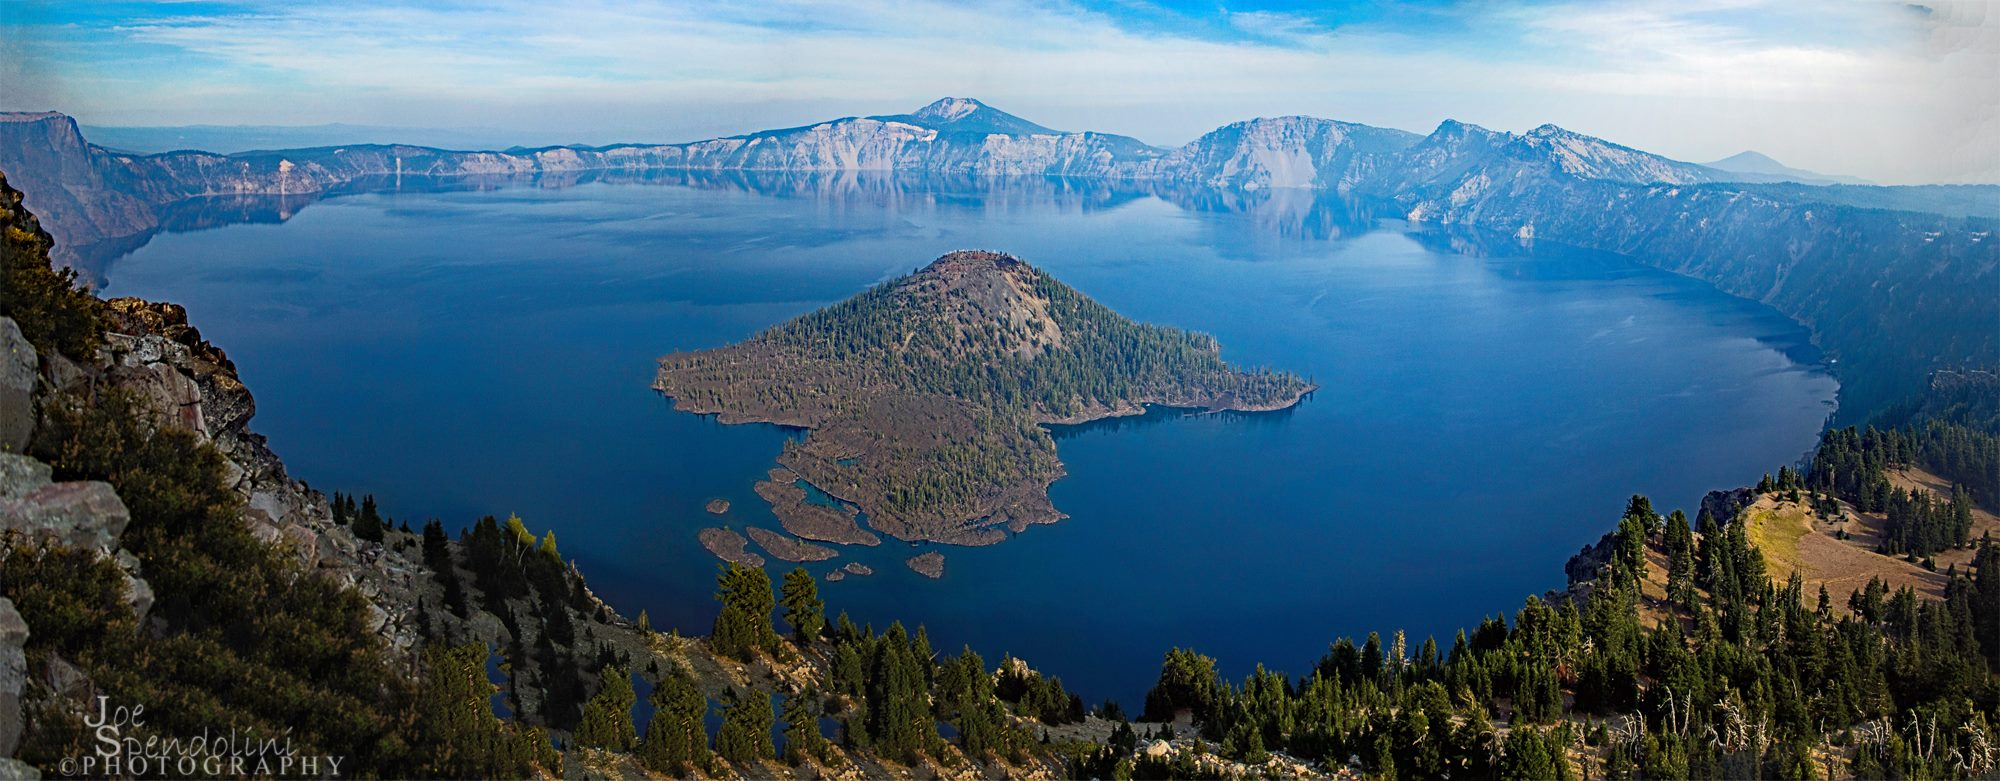 Panorama from Watchman Peak (Joe Spendolini Photography)